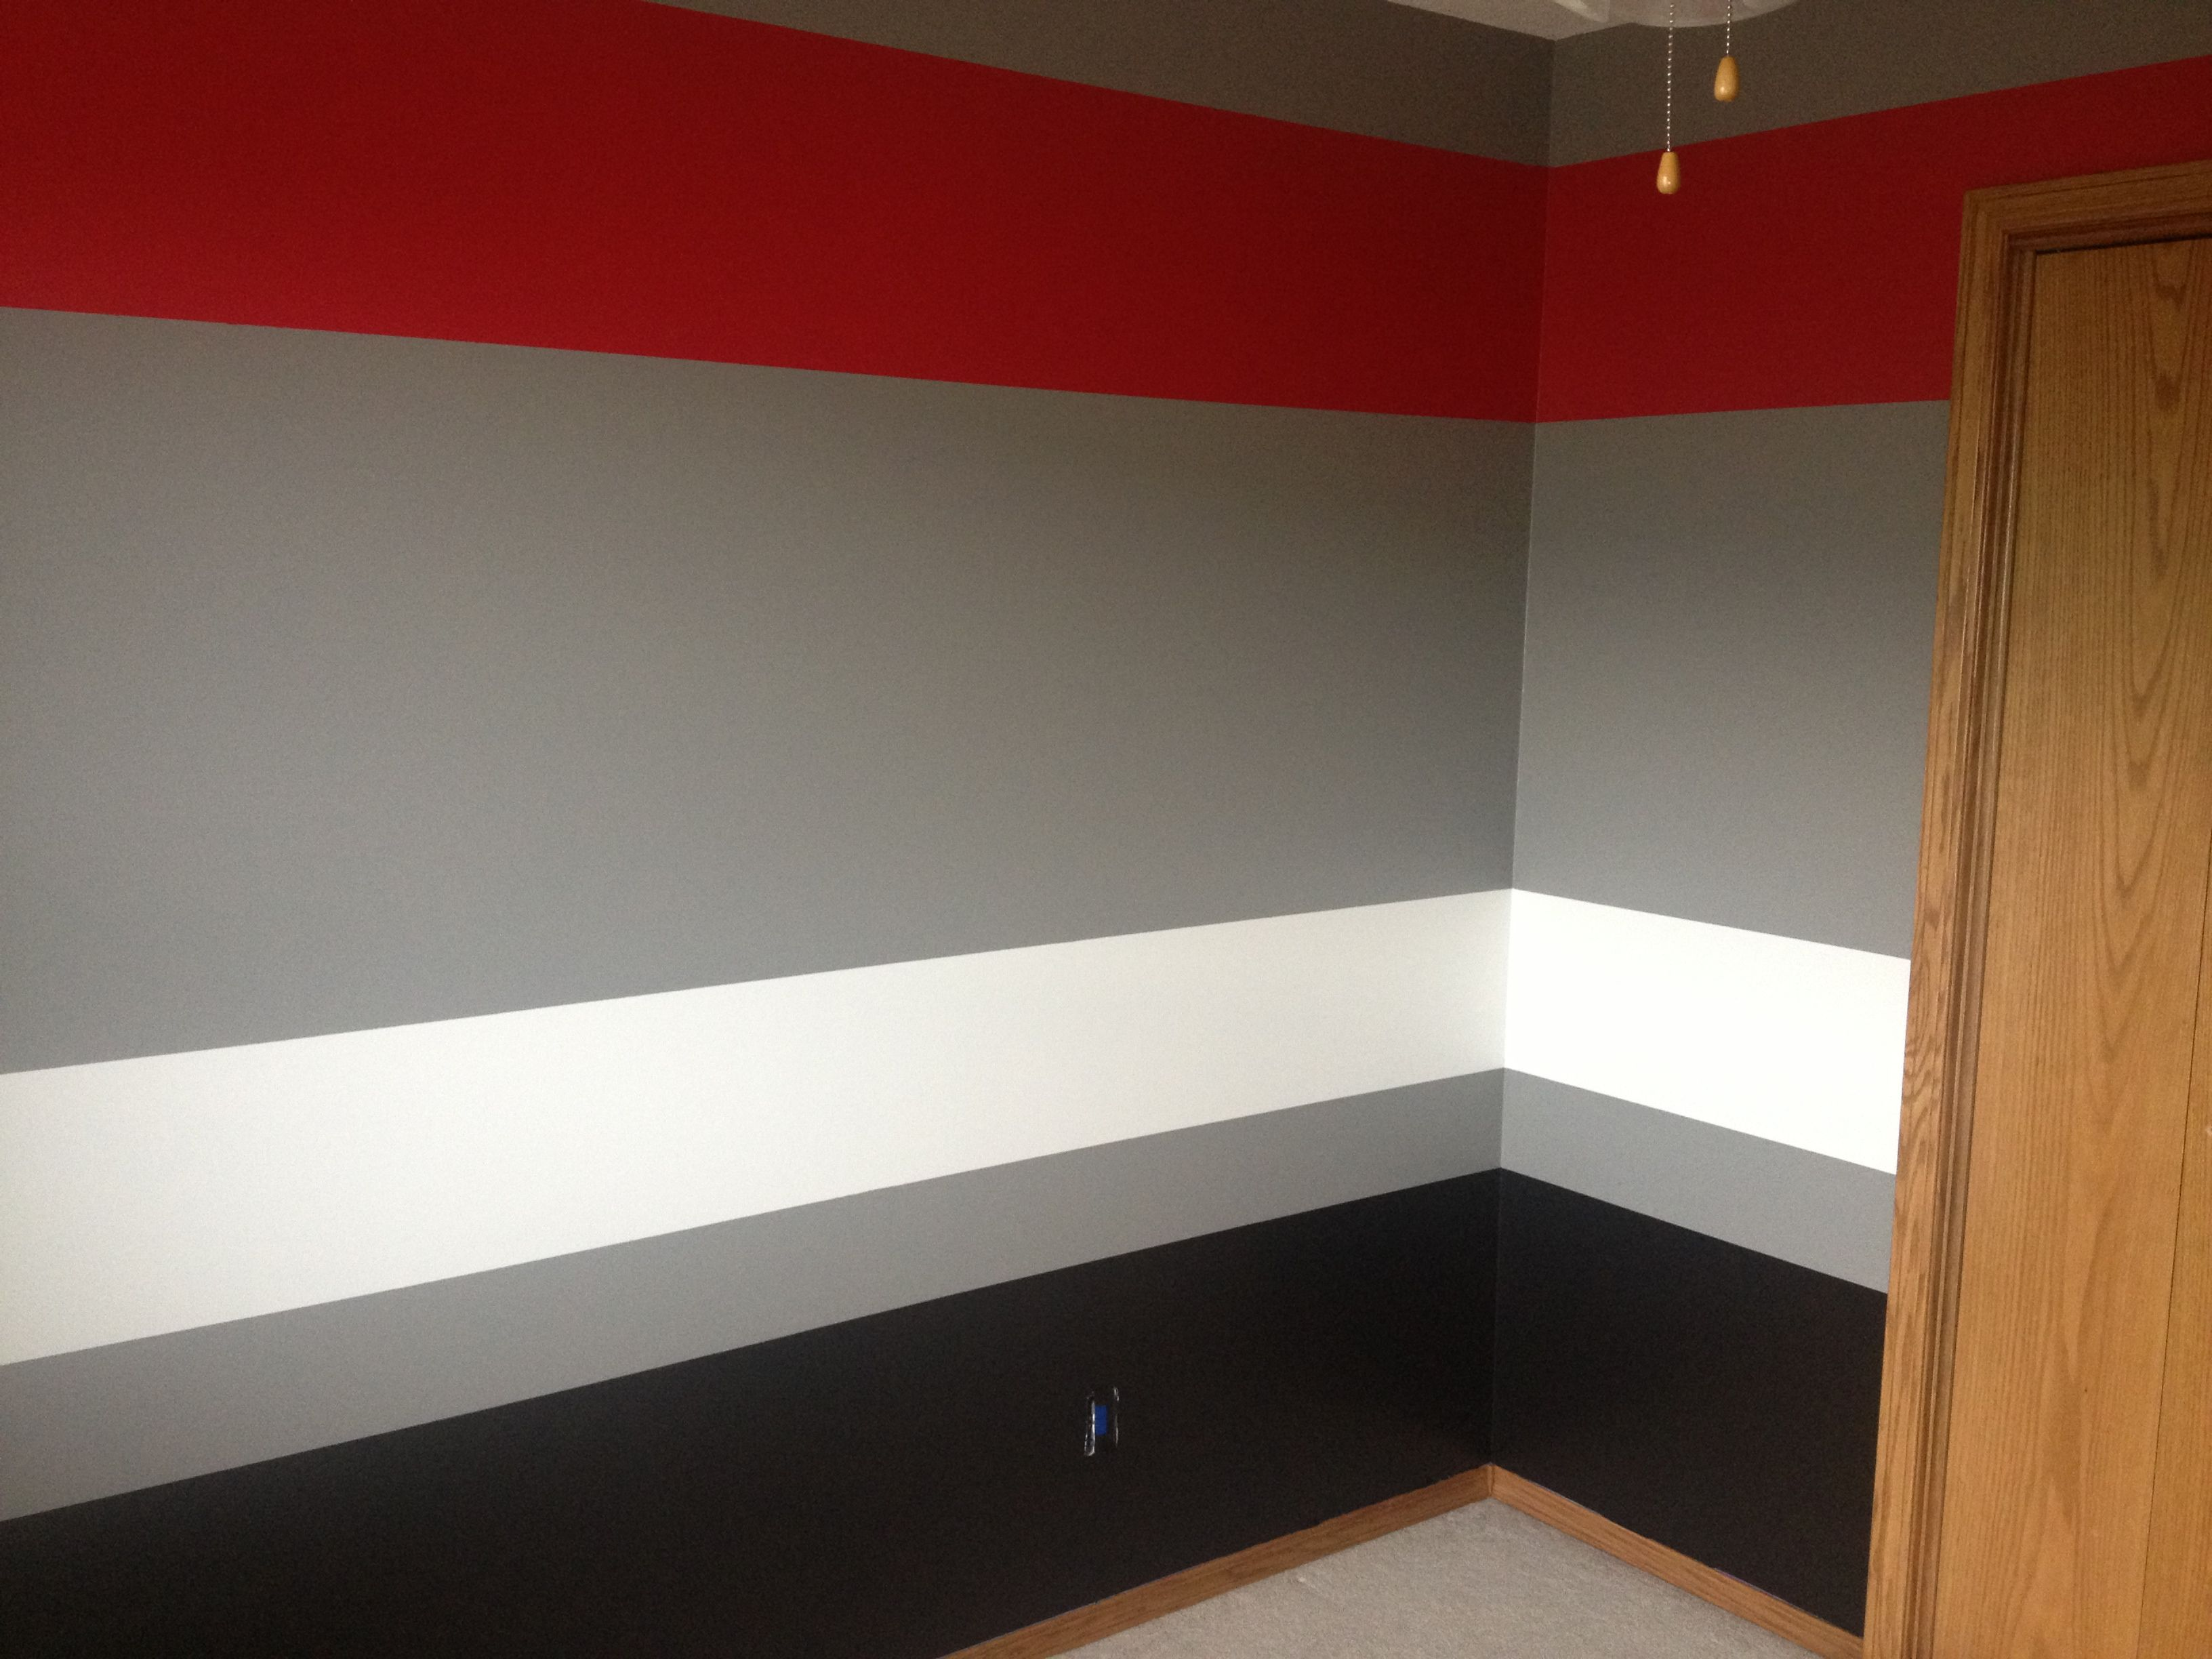 painted room grey, red, white, black | rooms | pinterest | gray